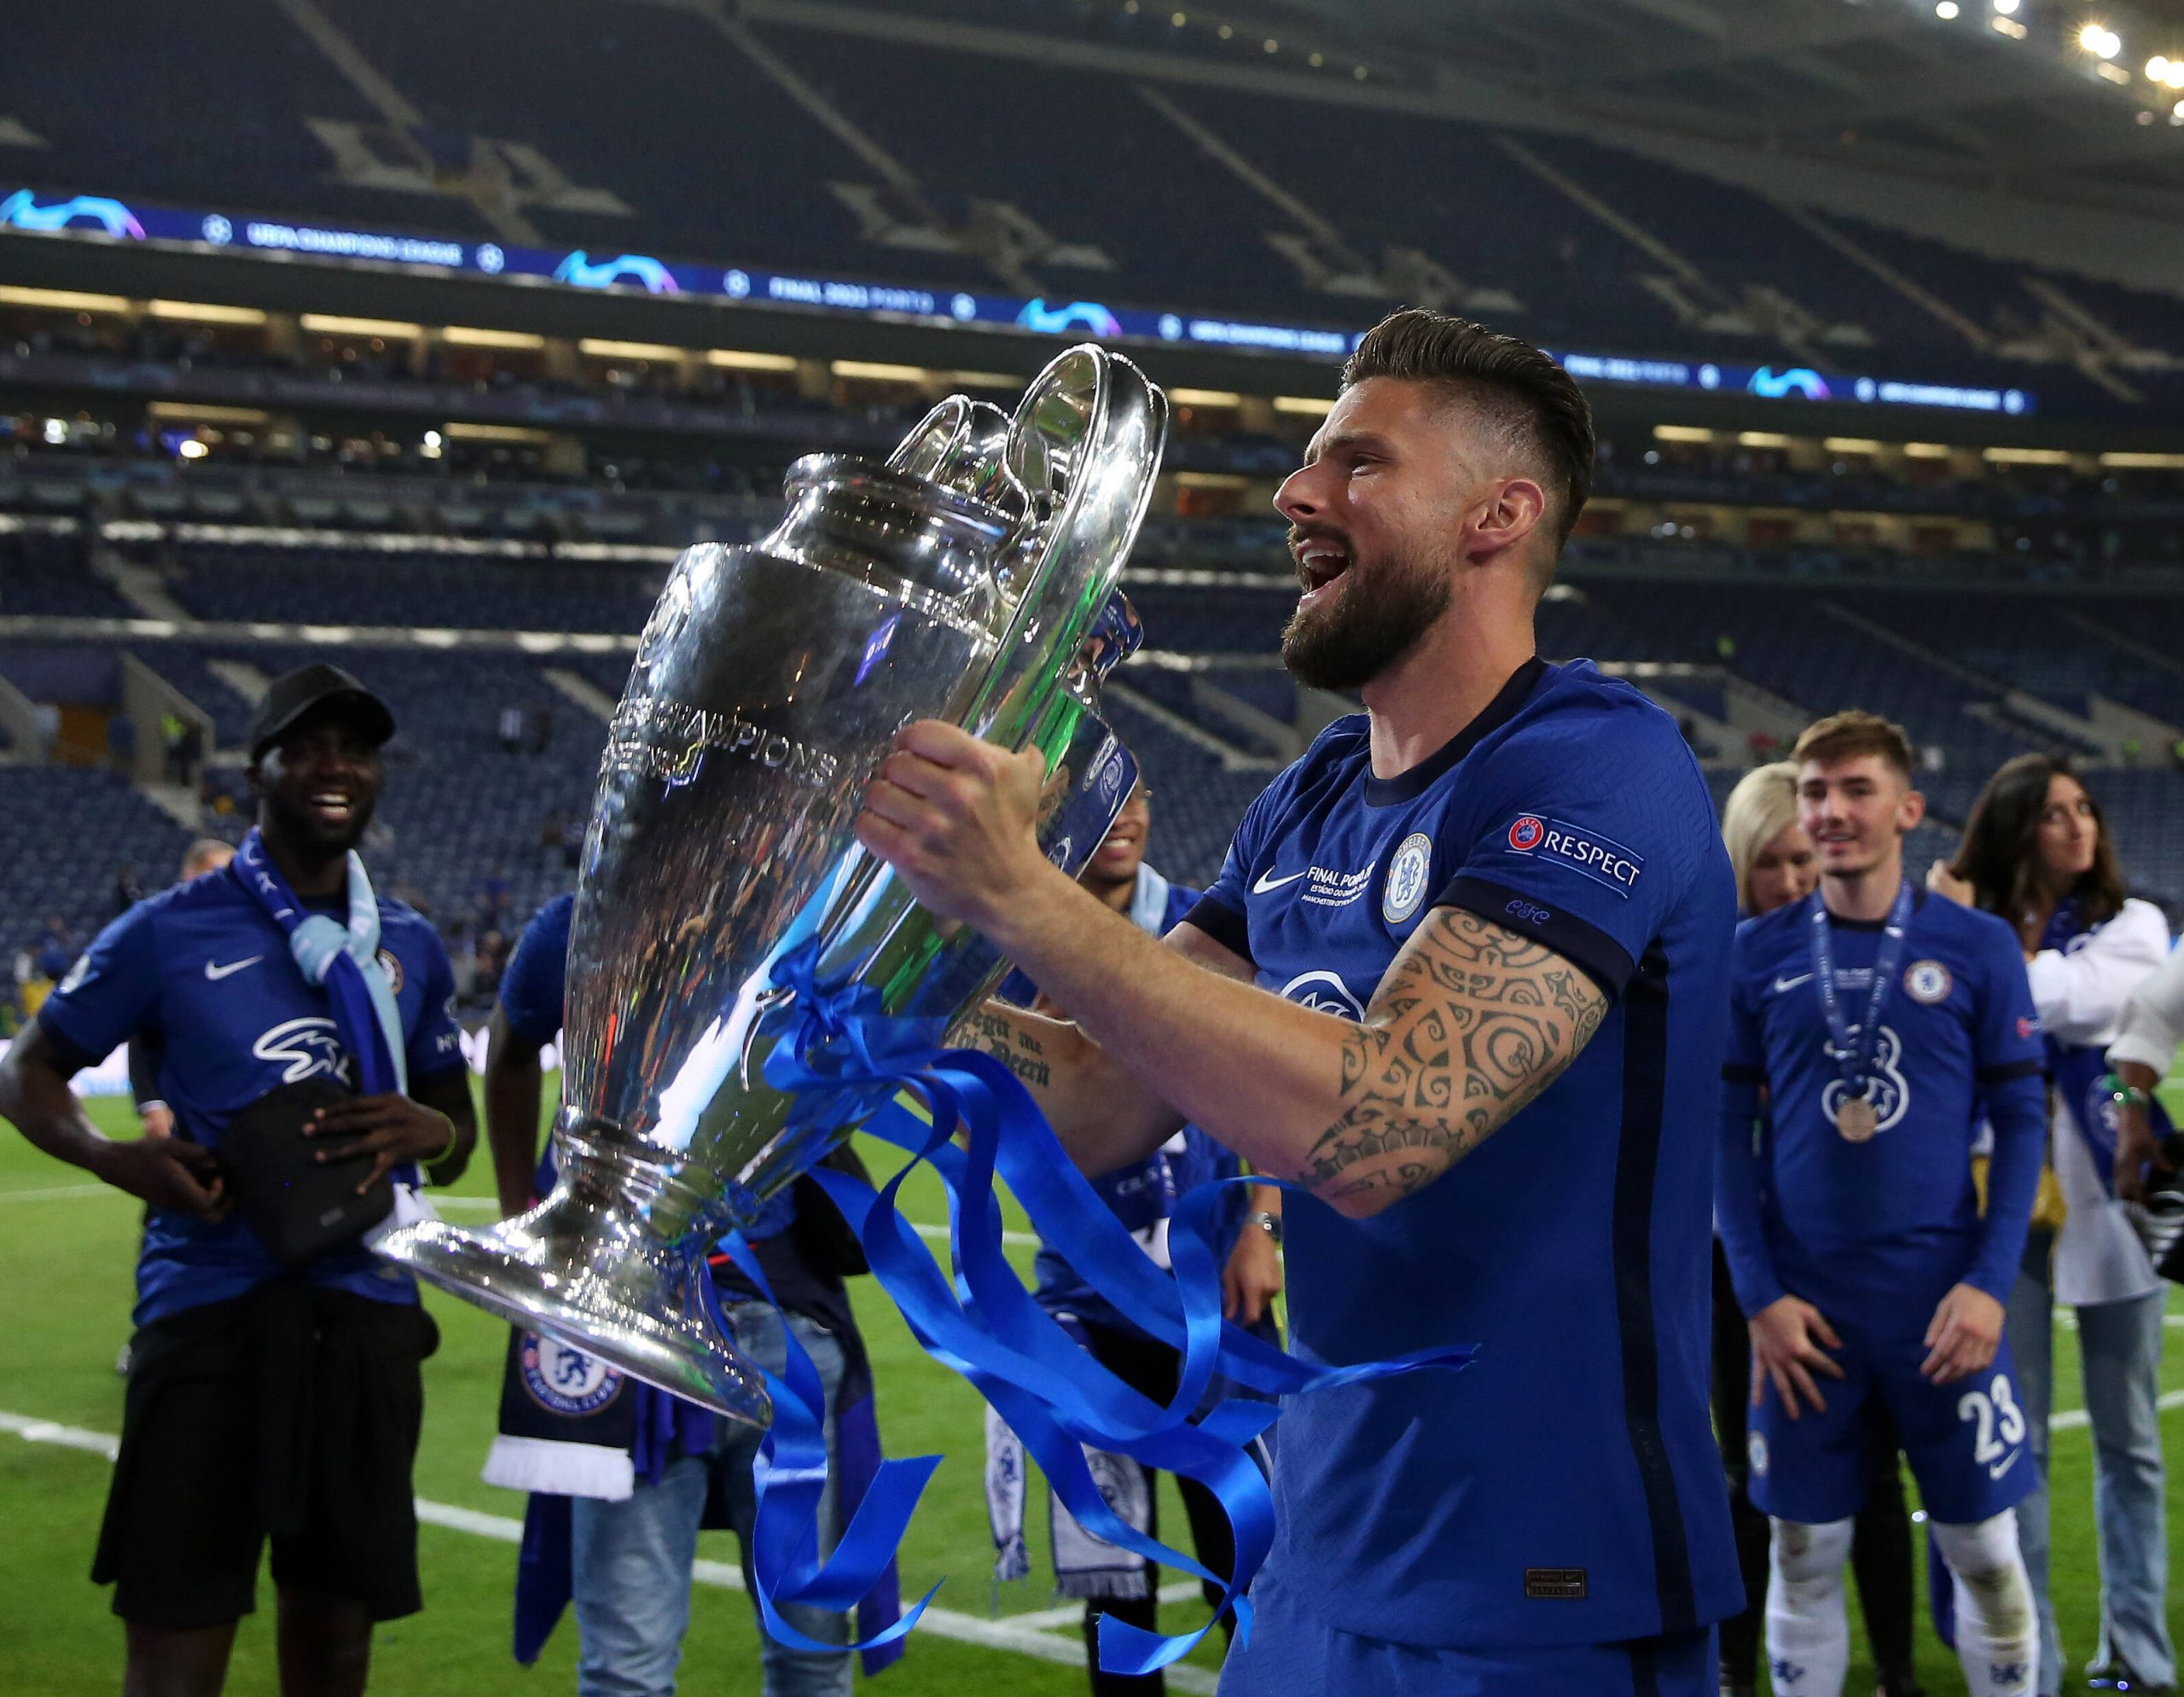 Olivier Giroud of Chelsea celebrates during the UEFA Champions League match